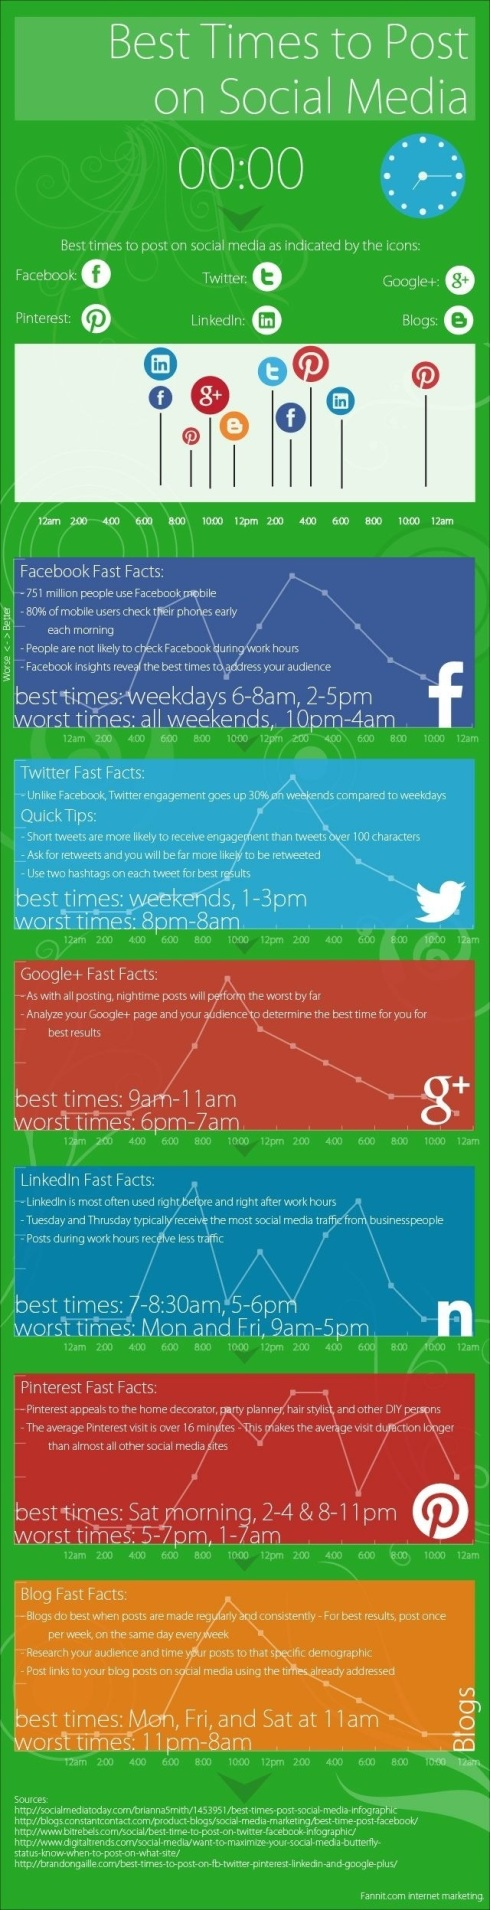 Best Time to Post on Social Media Networks [INFOGRAPHIC]